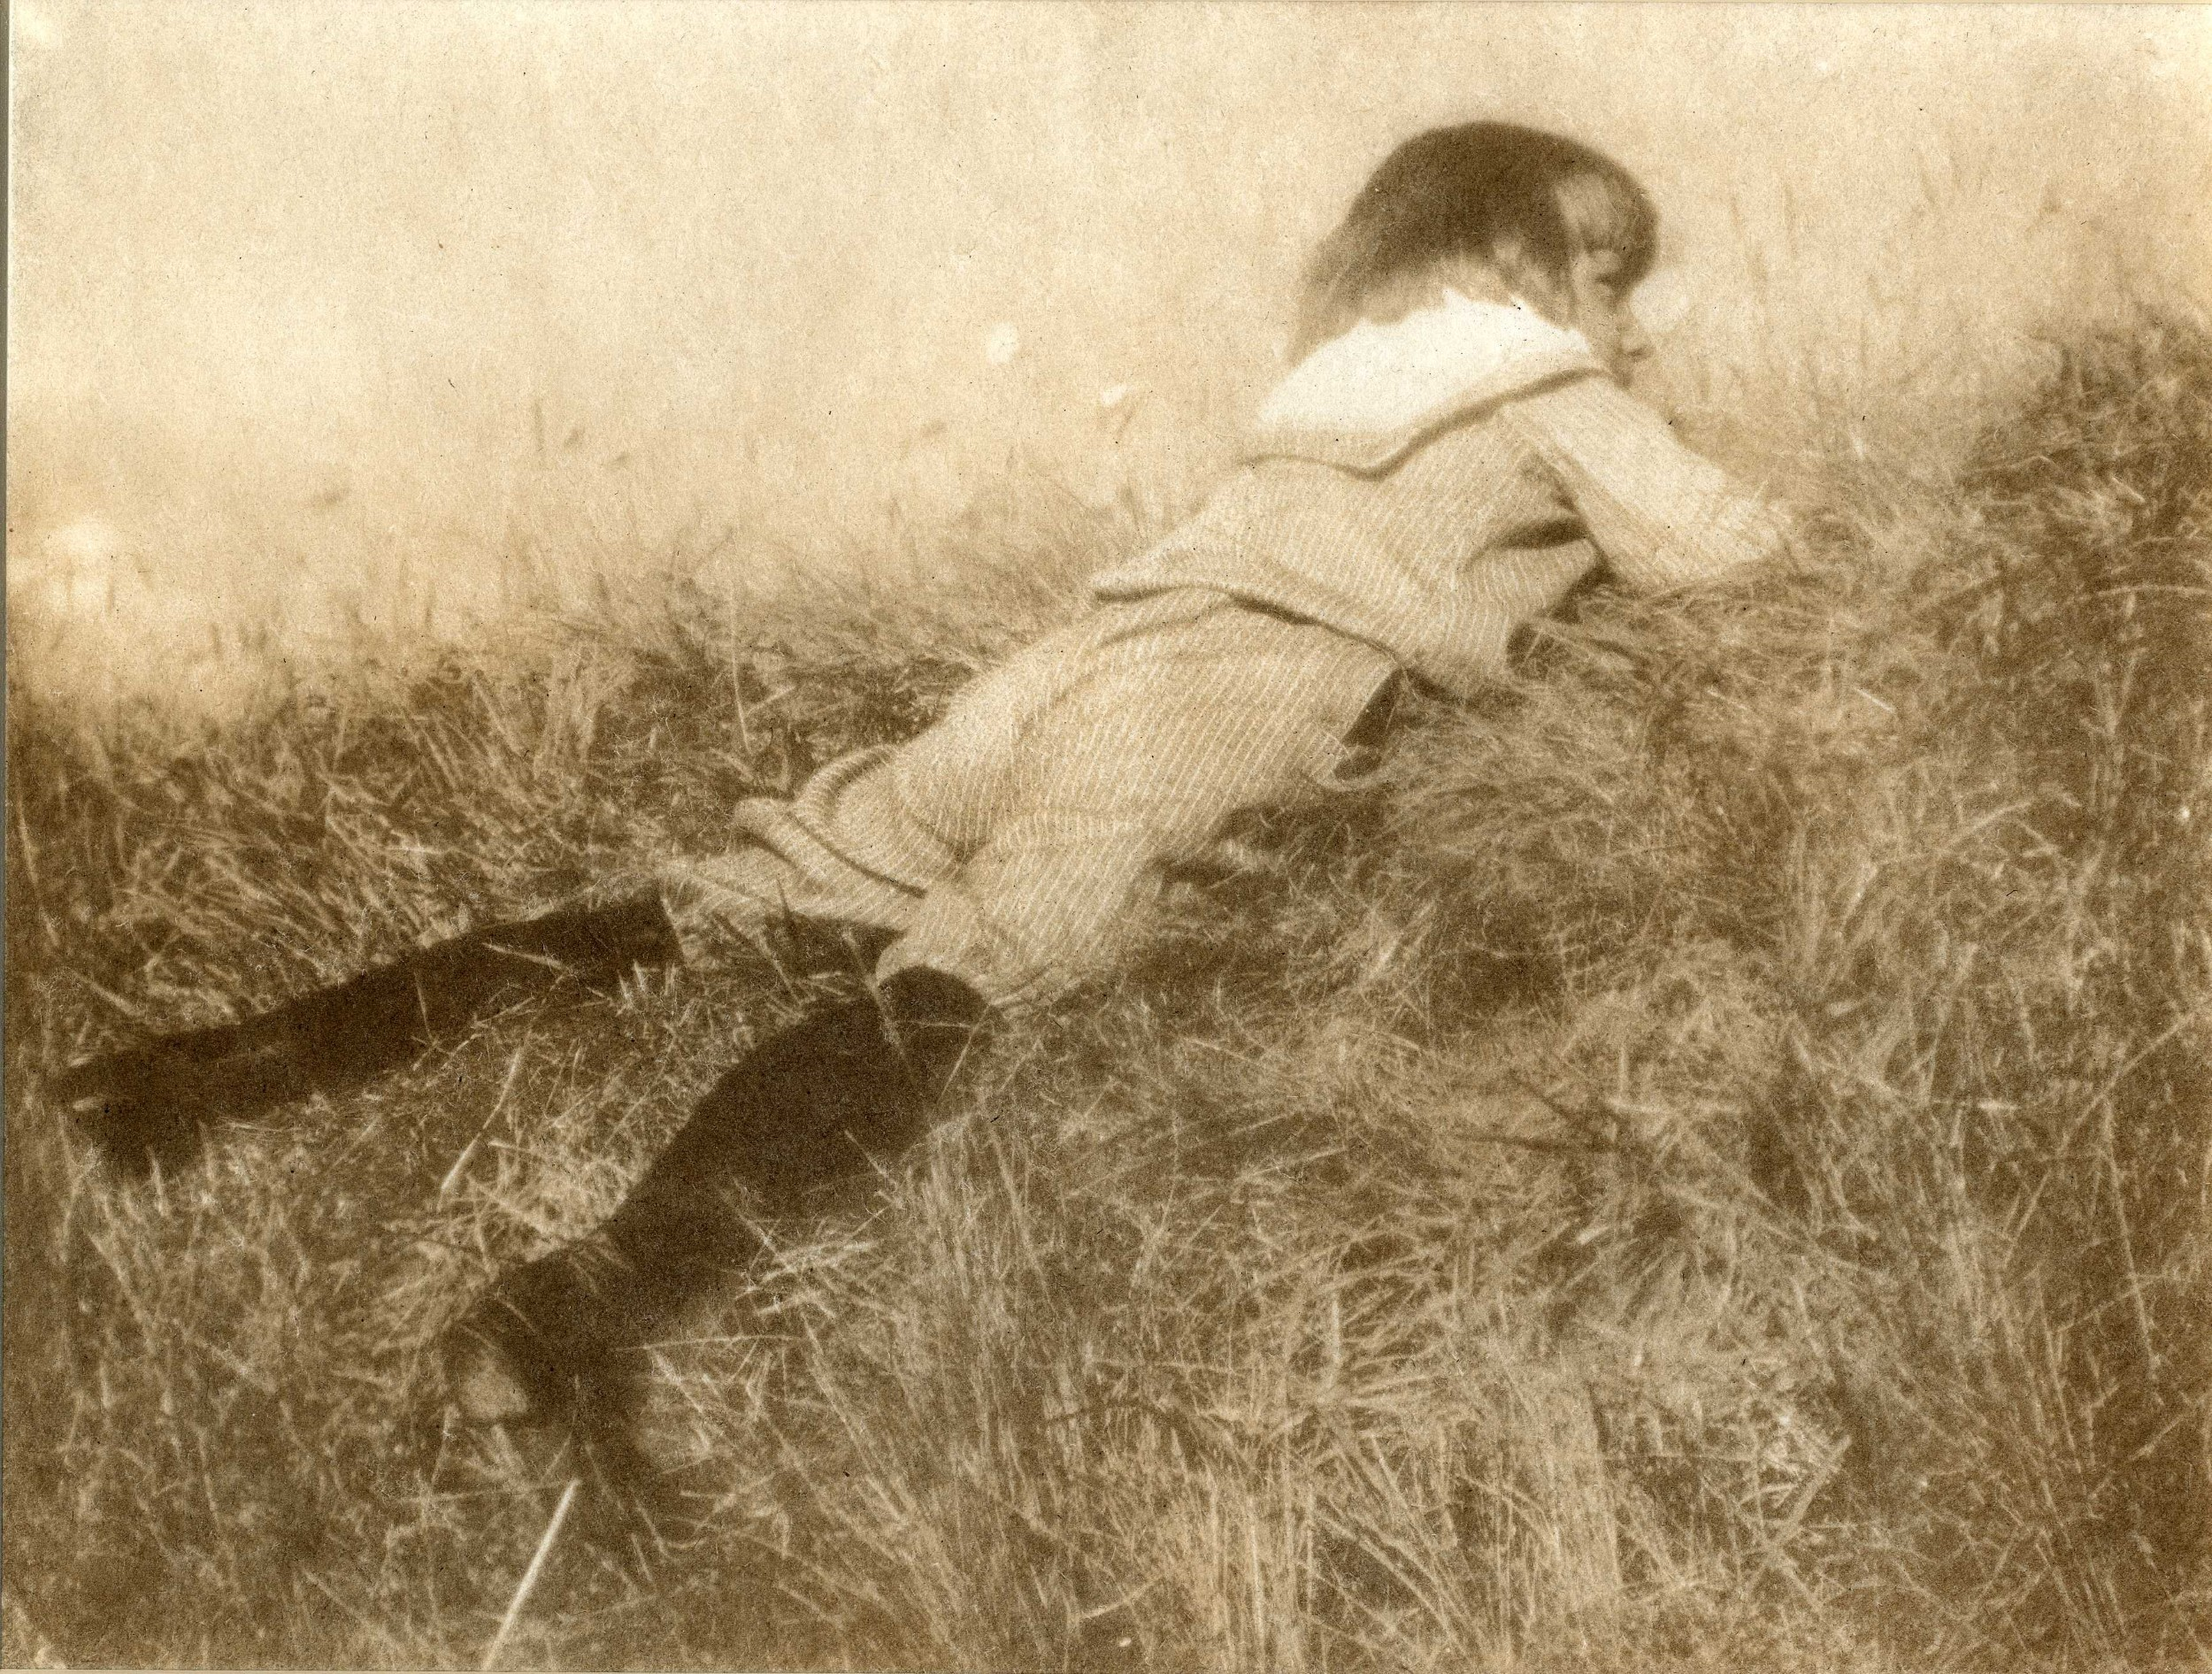 Hans in the grass, ca. 1907